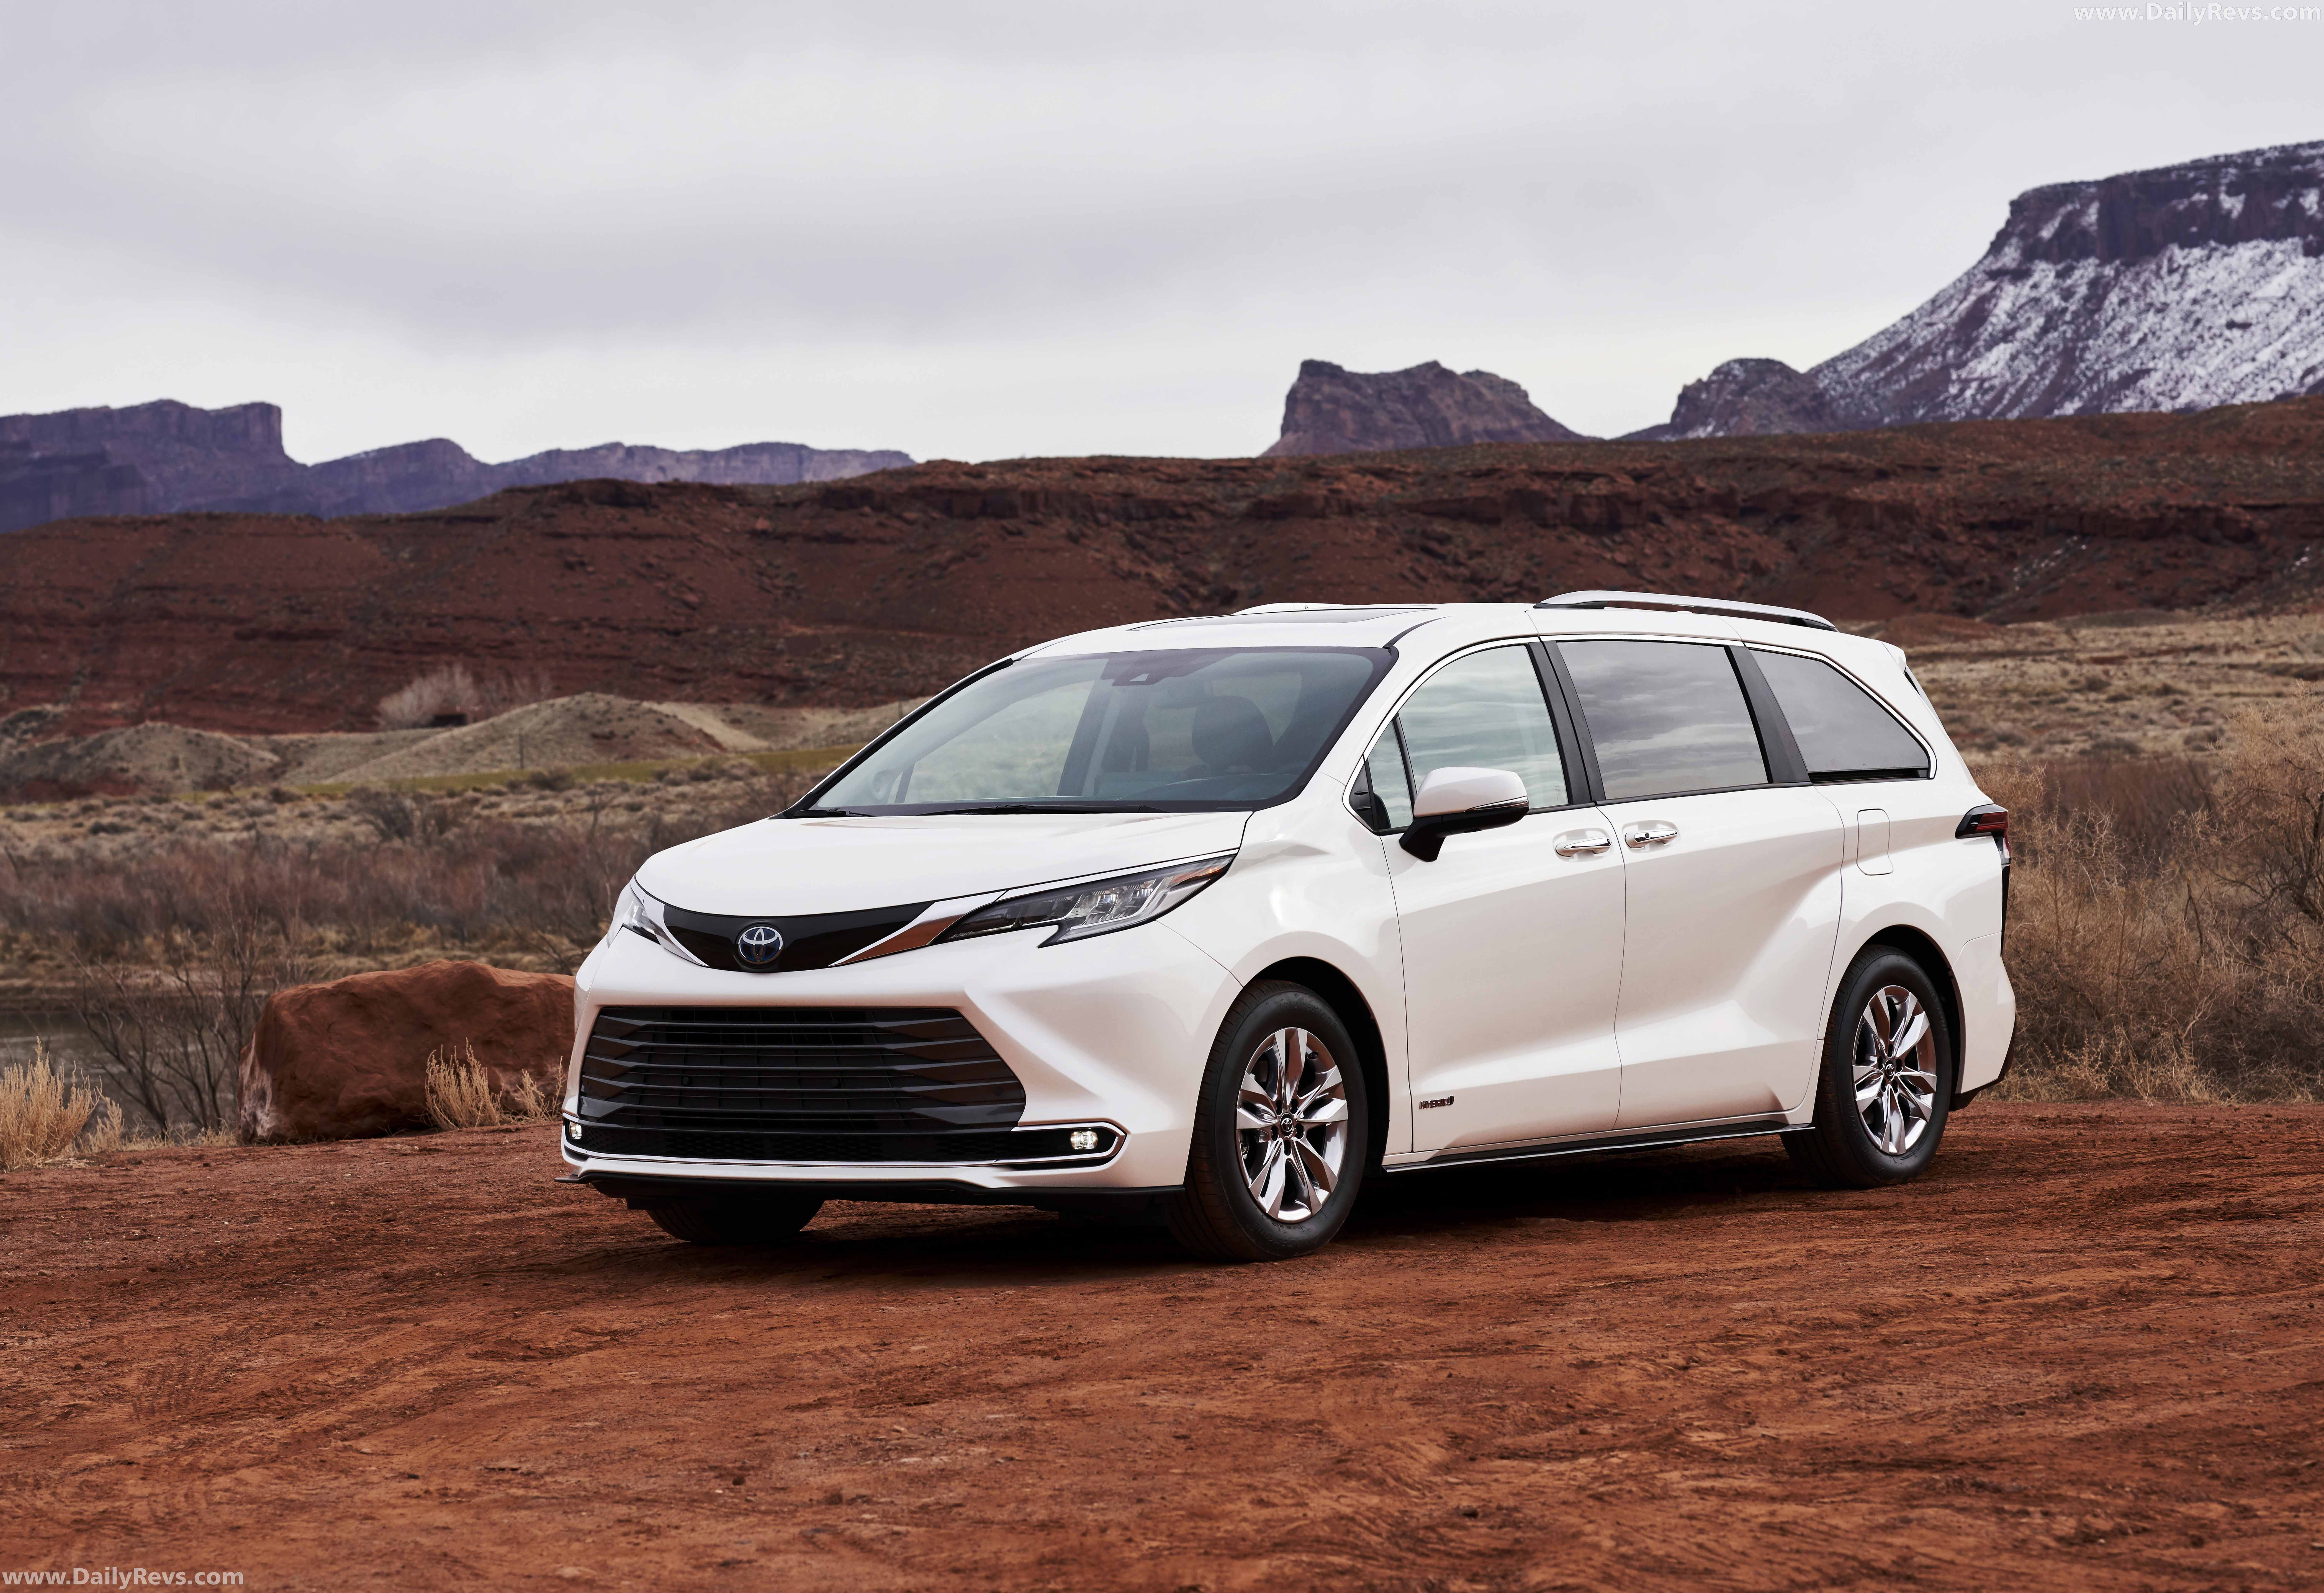 2021 Toyota Sienna Limited - Dailyrevs